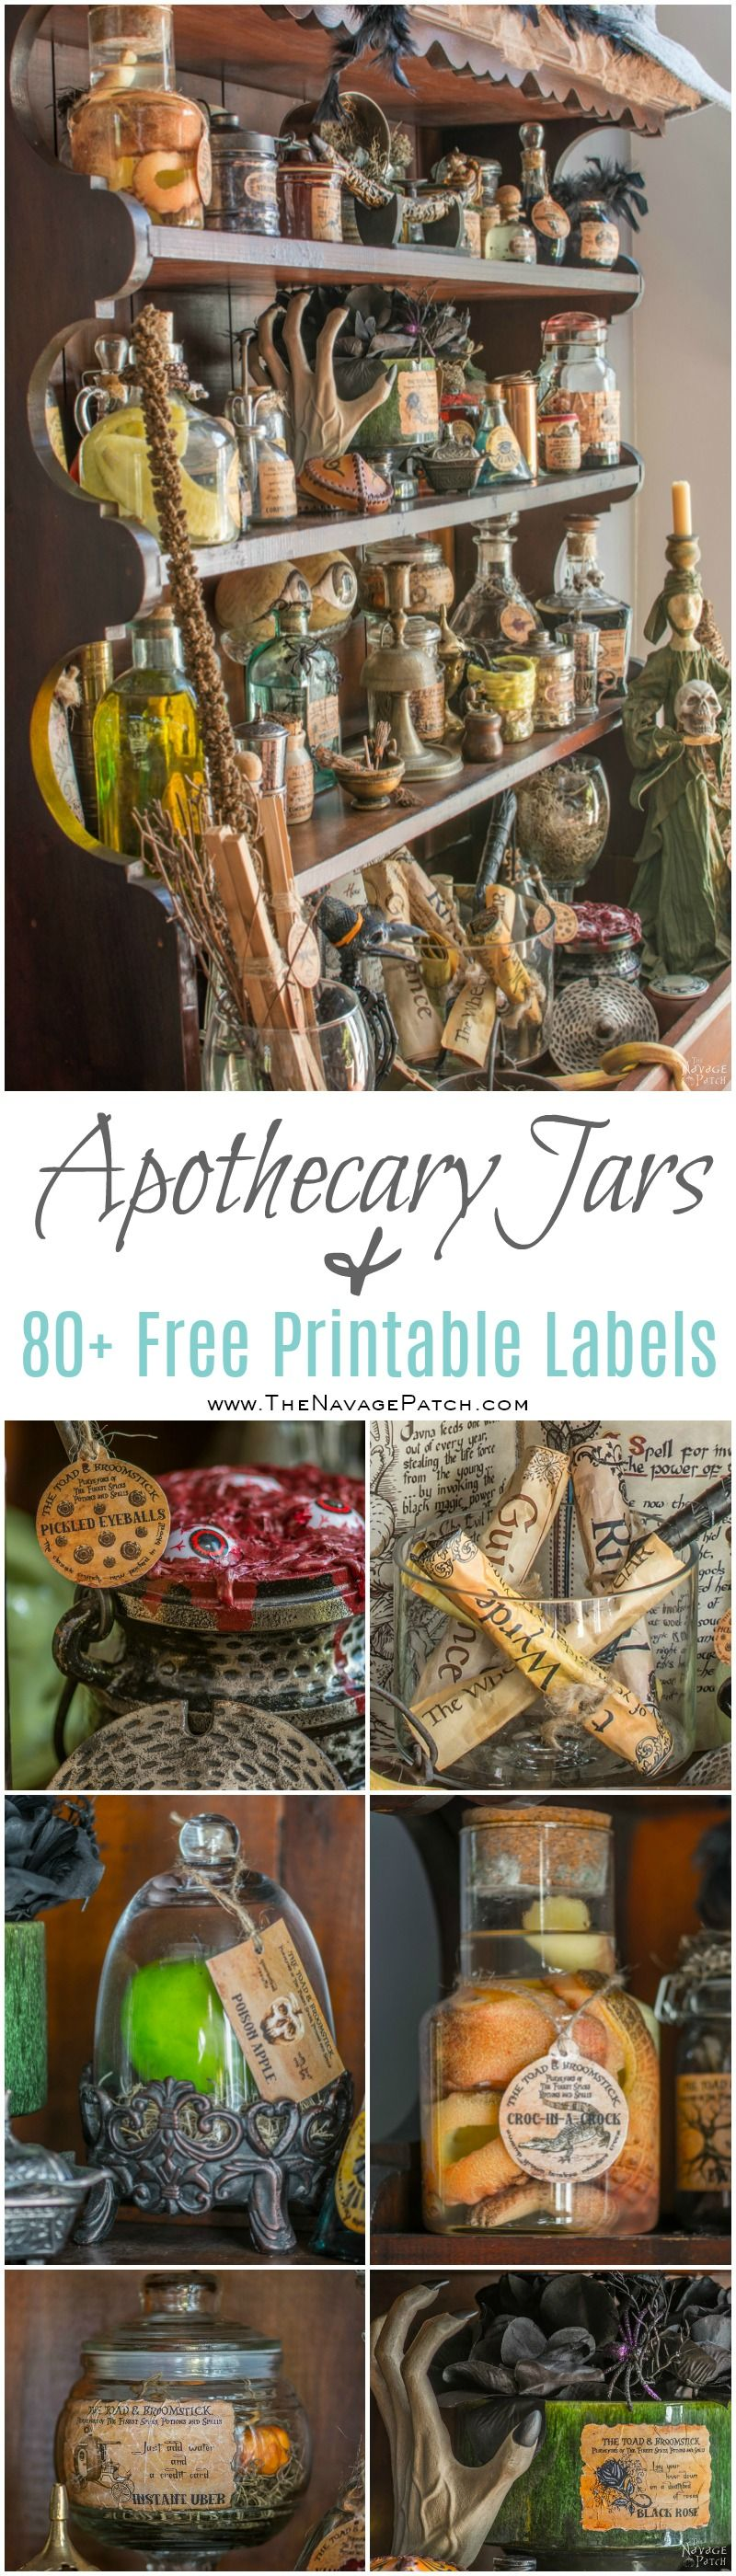 image about Free Printable Apothecary Jar Labels called Apothecary Jars and Absolutely free Printable Labels - The Navage Patch